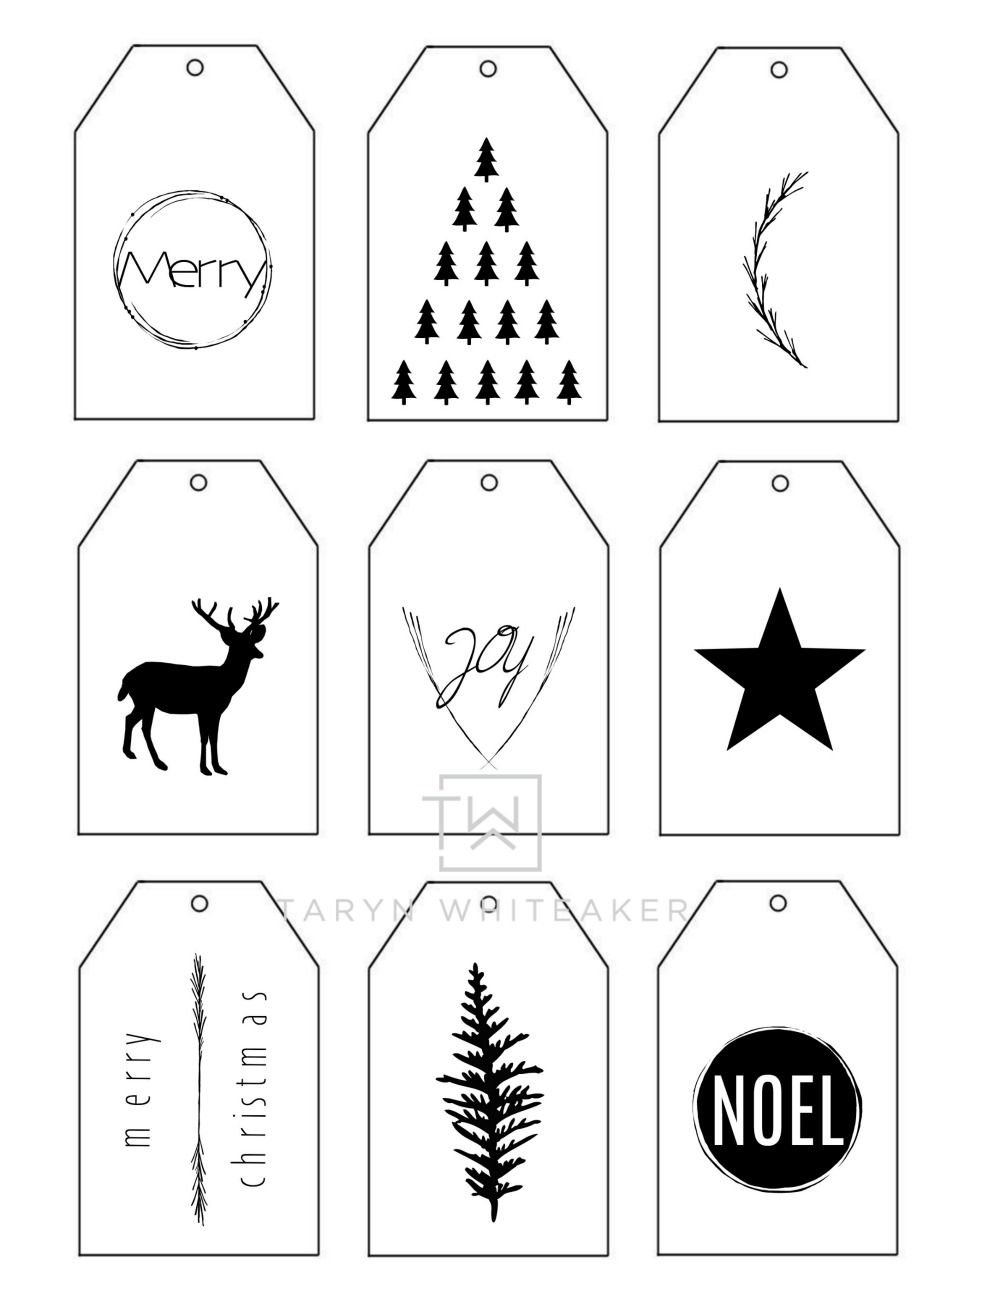 photograph relating to Printable Christmas Tag named Printable Xmas Reward Tags - Taryn Whiteaker